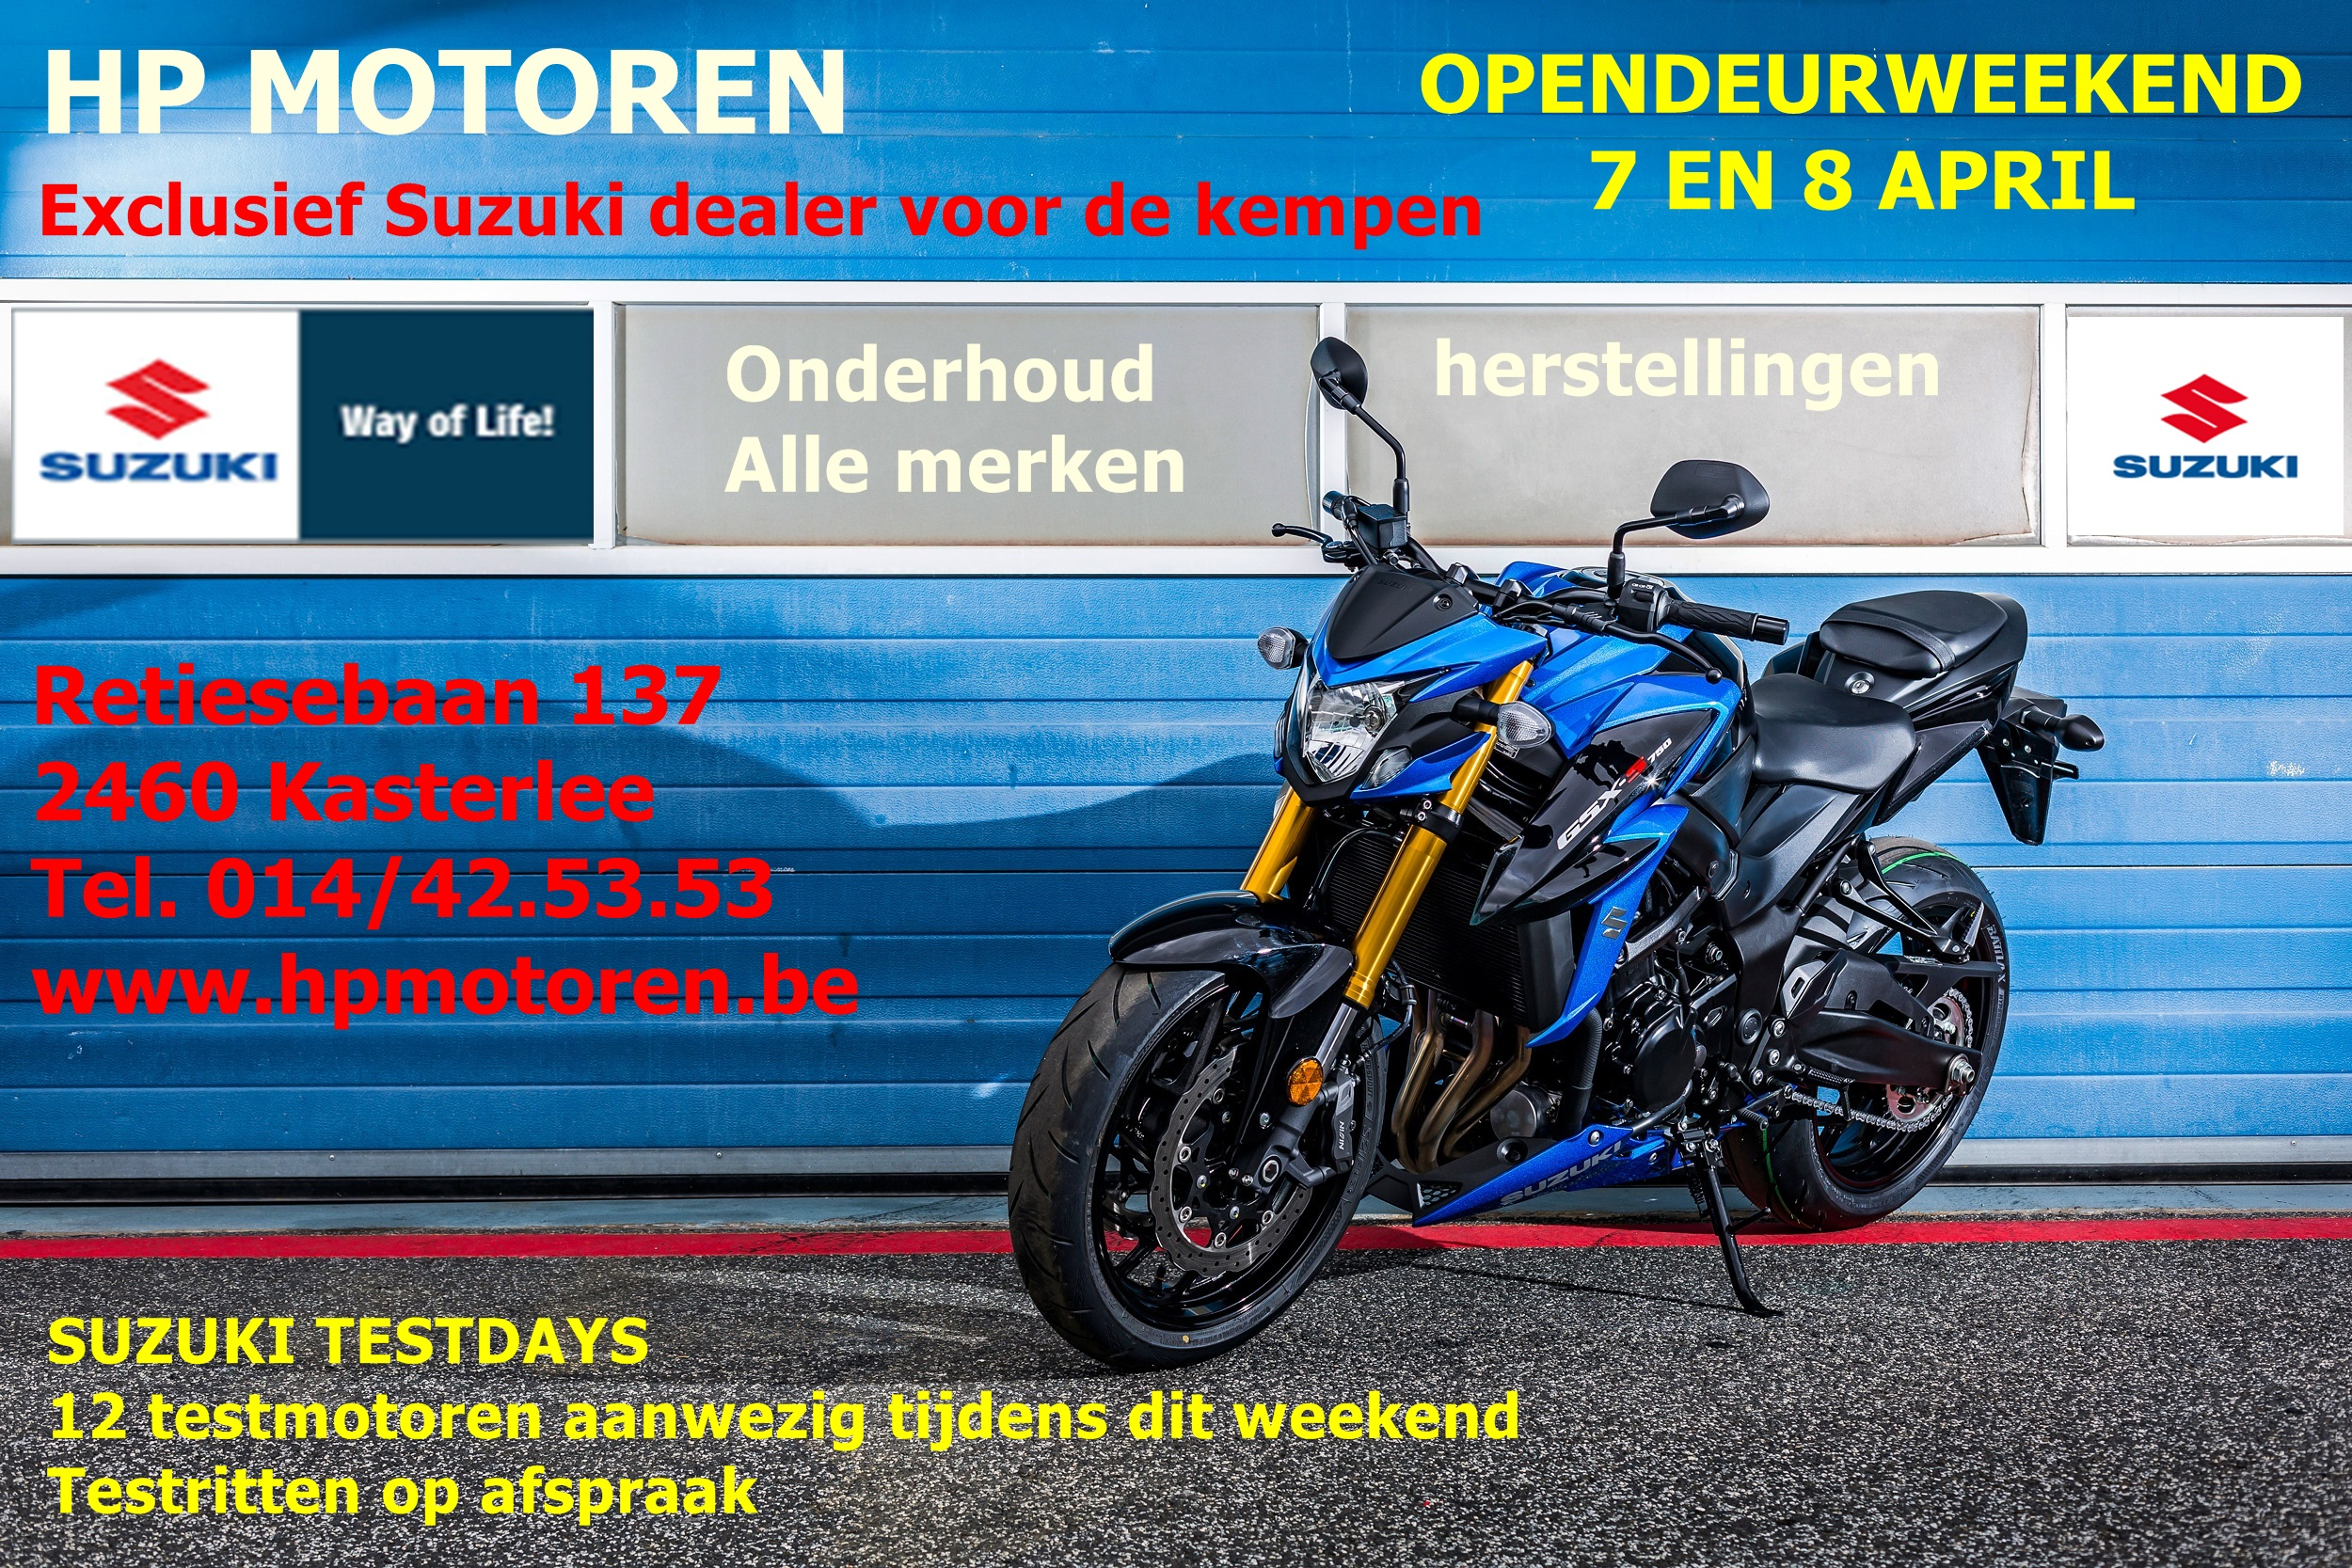 OPENDEURDAGEN 7 EN 8 APRIL